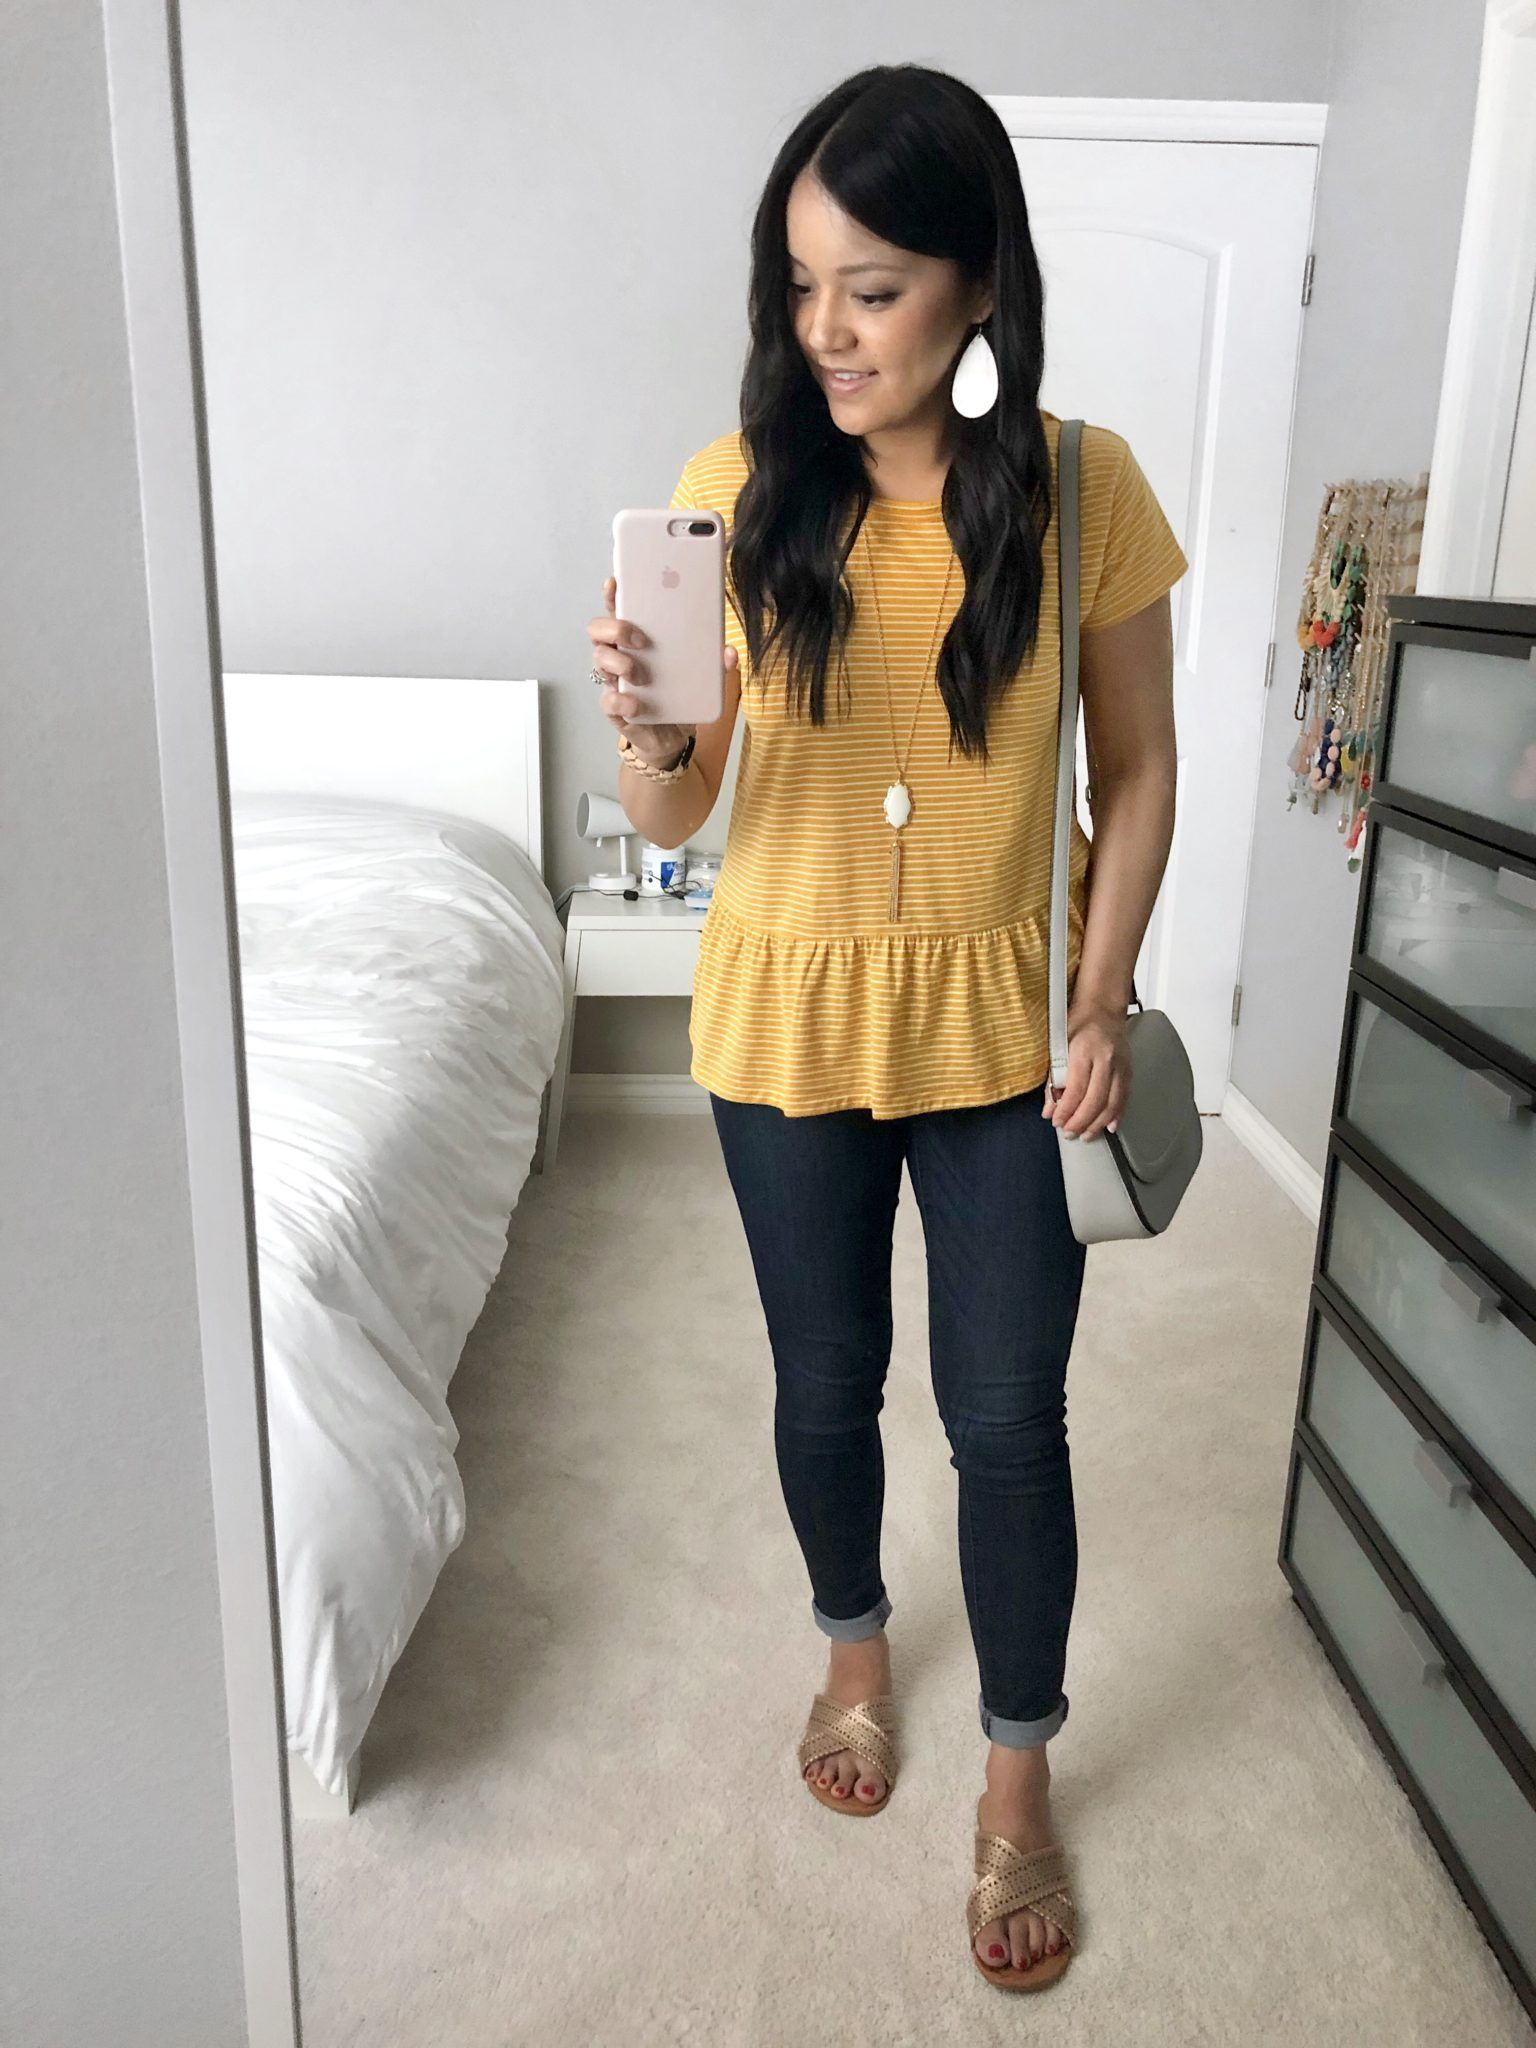 Summer Outfits: Super Comfy and Affordable Tees Yellow Peplum Top and Jeans Outfit